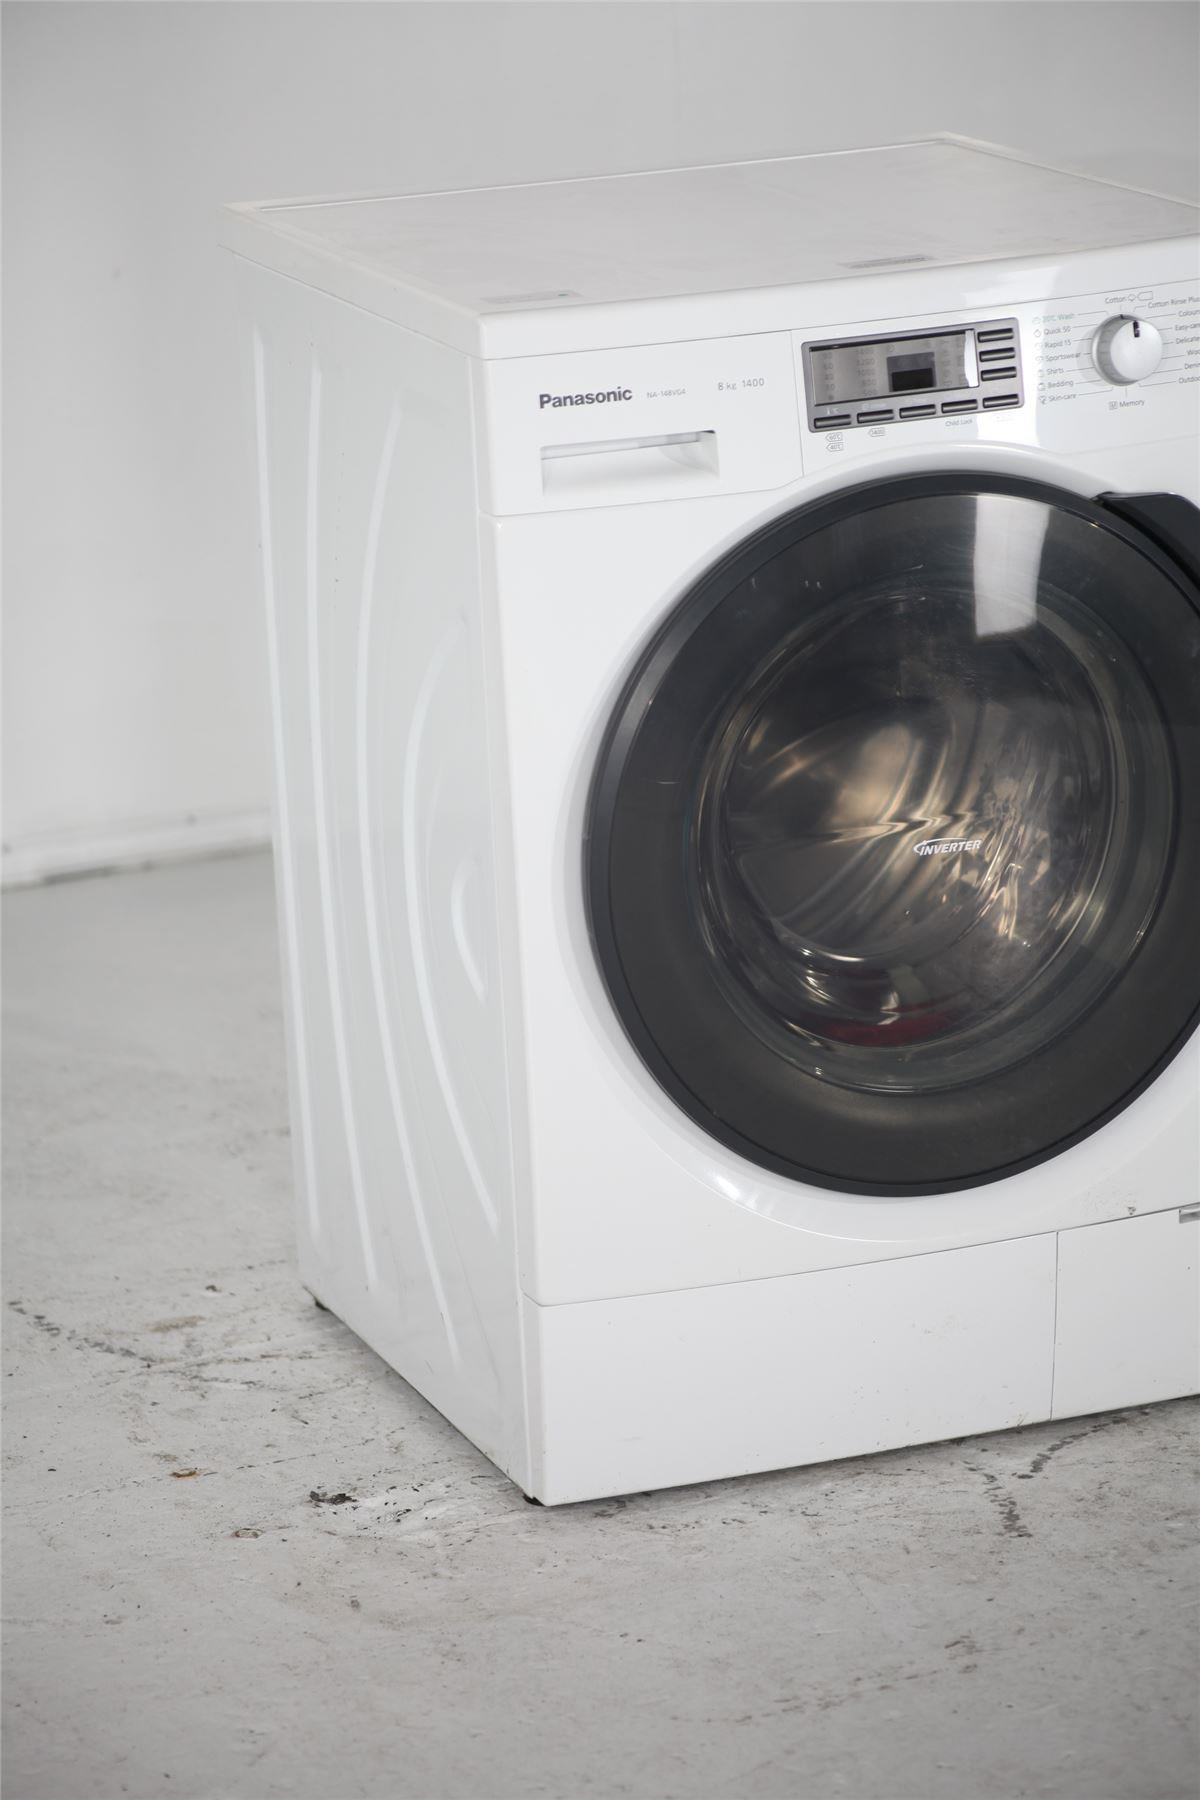 Panasonic 8kg Washing Machine - Na-148vg4